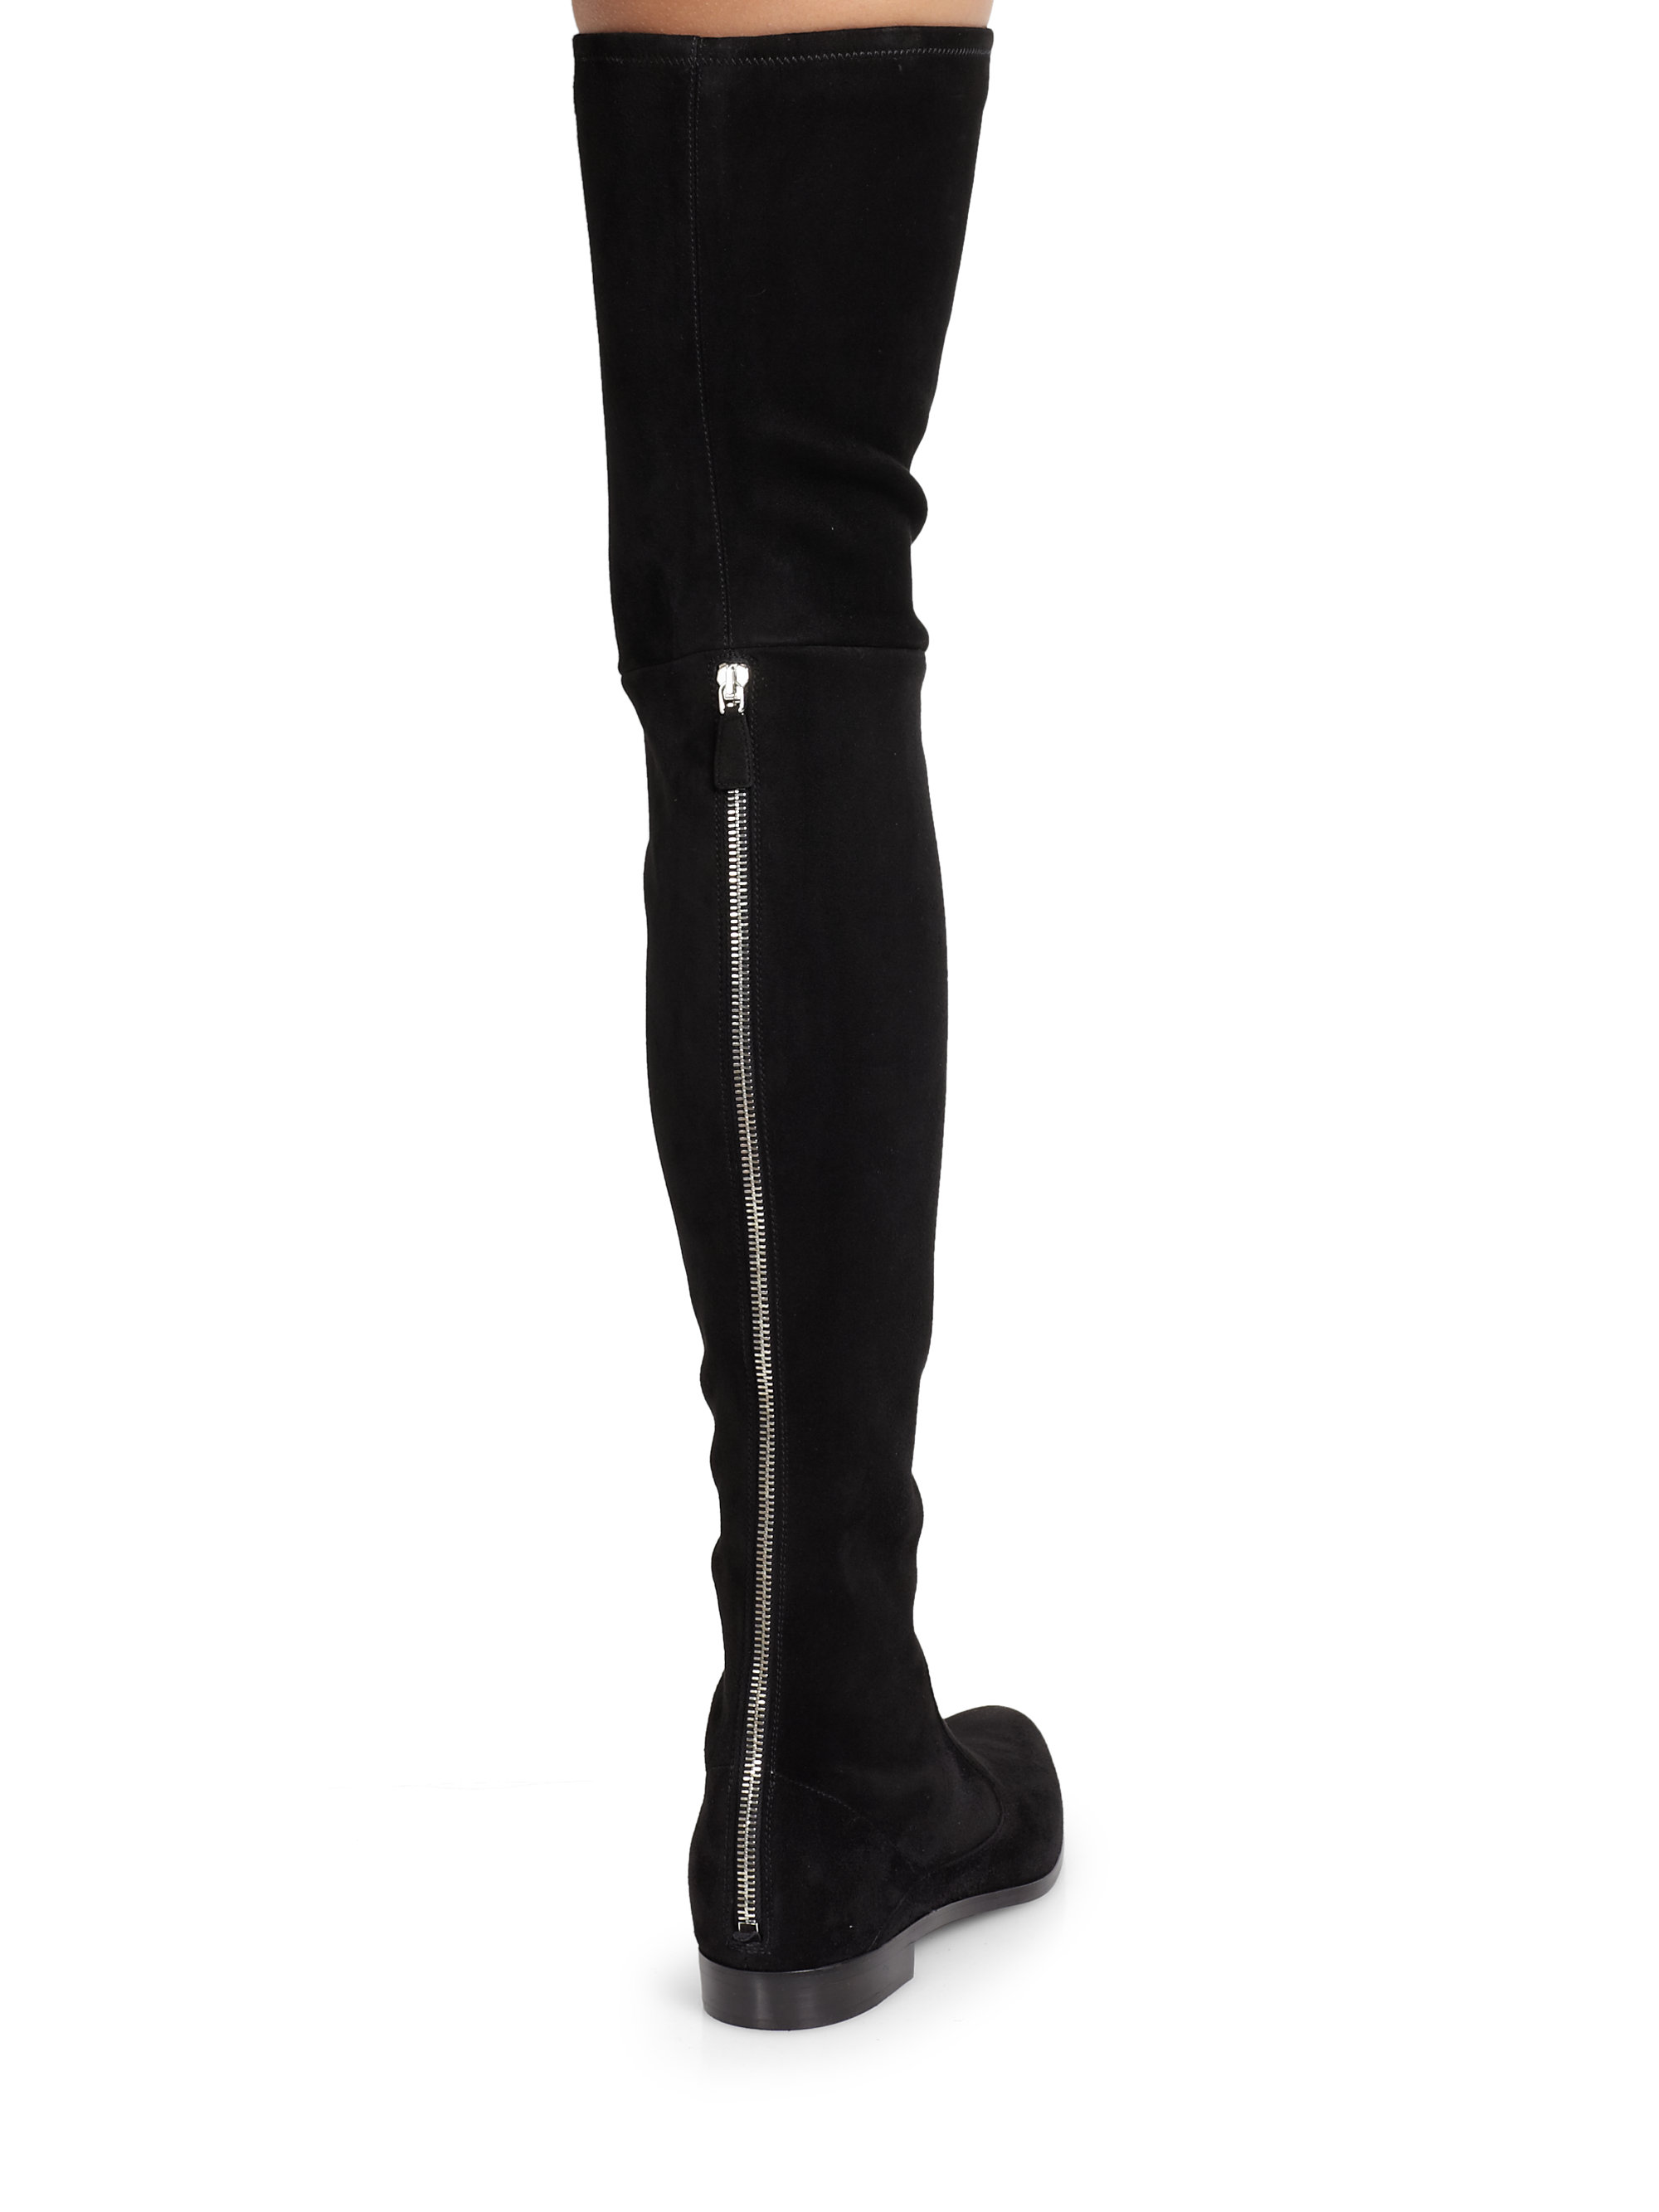 d31b6072804 Lyst - Prada Suede Over-the-knee Boots in Black